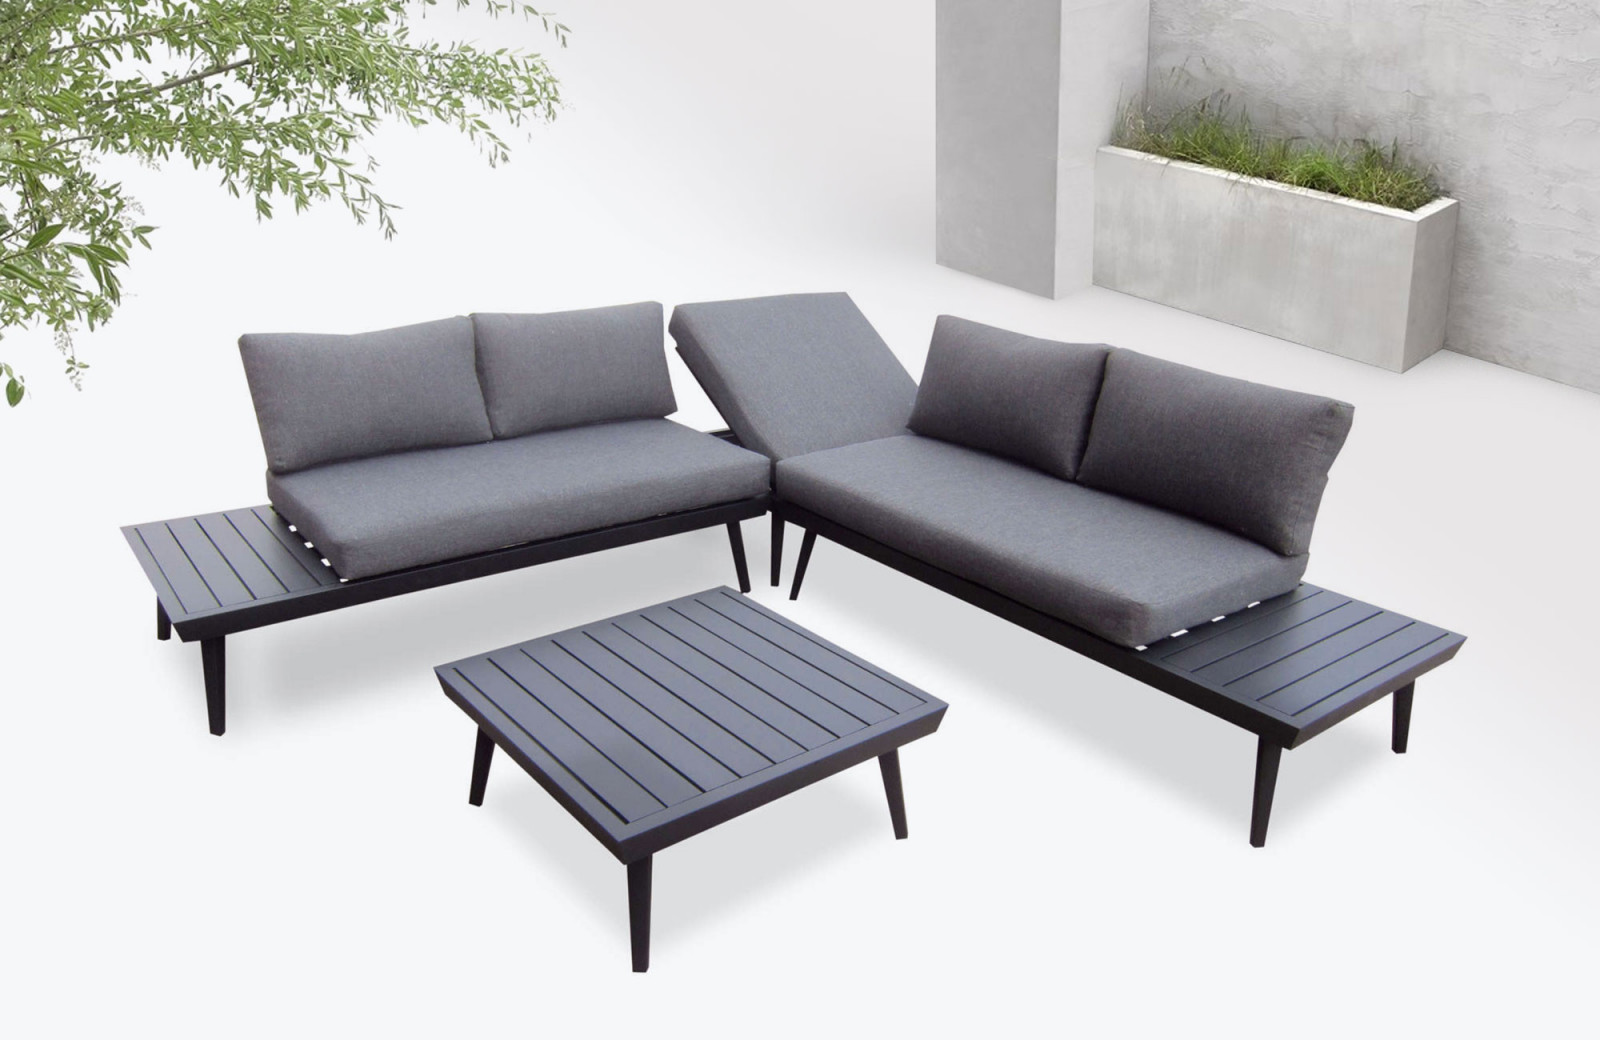 Salon Jardin Luxe Garden Furniture Aluminium Vigo